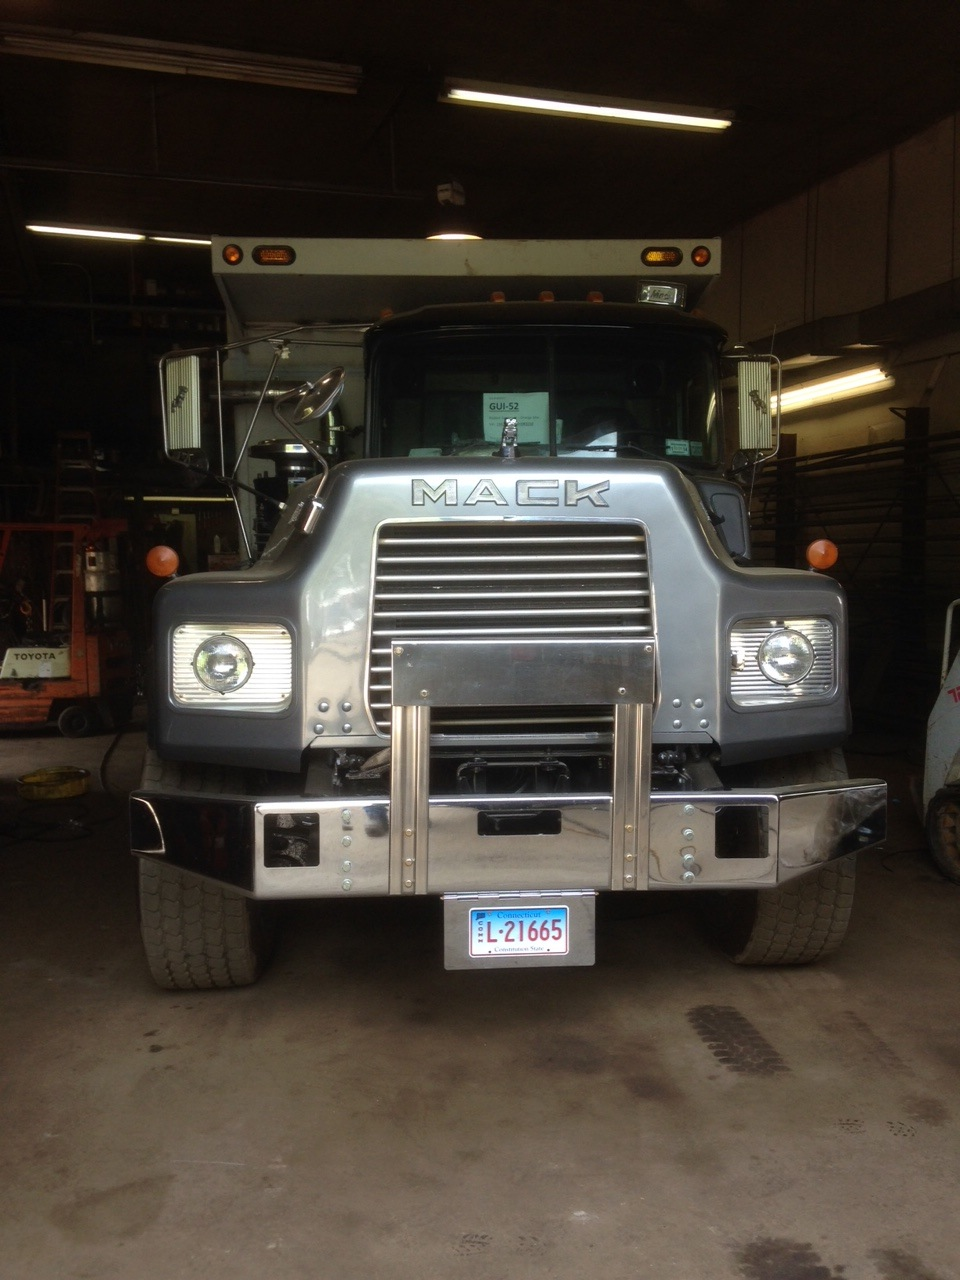 95 mack dm 688s project-img_6173.jpg